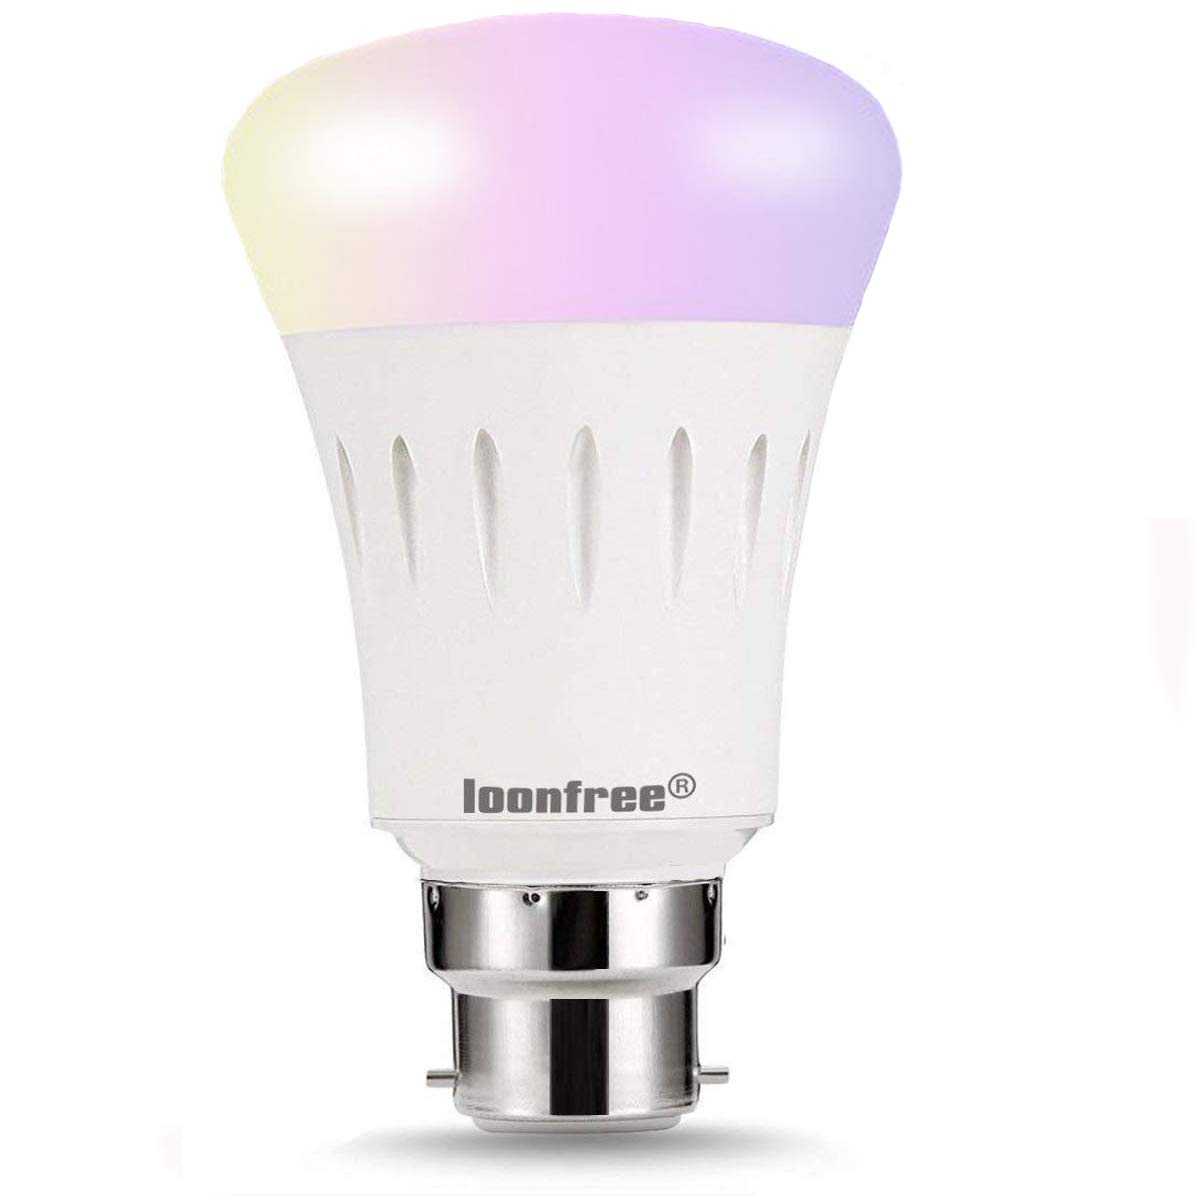 LED Smart Bulb - Colour Changing, Emit Any in The Rainbow and Tuneable White Lights, 60W Equivalent, Controlled by a Smartphone Caspro